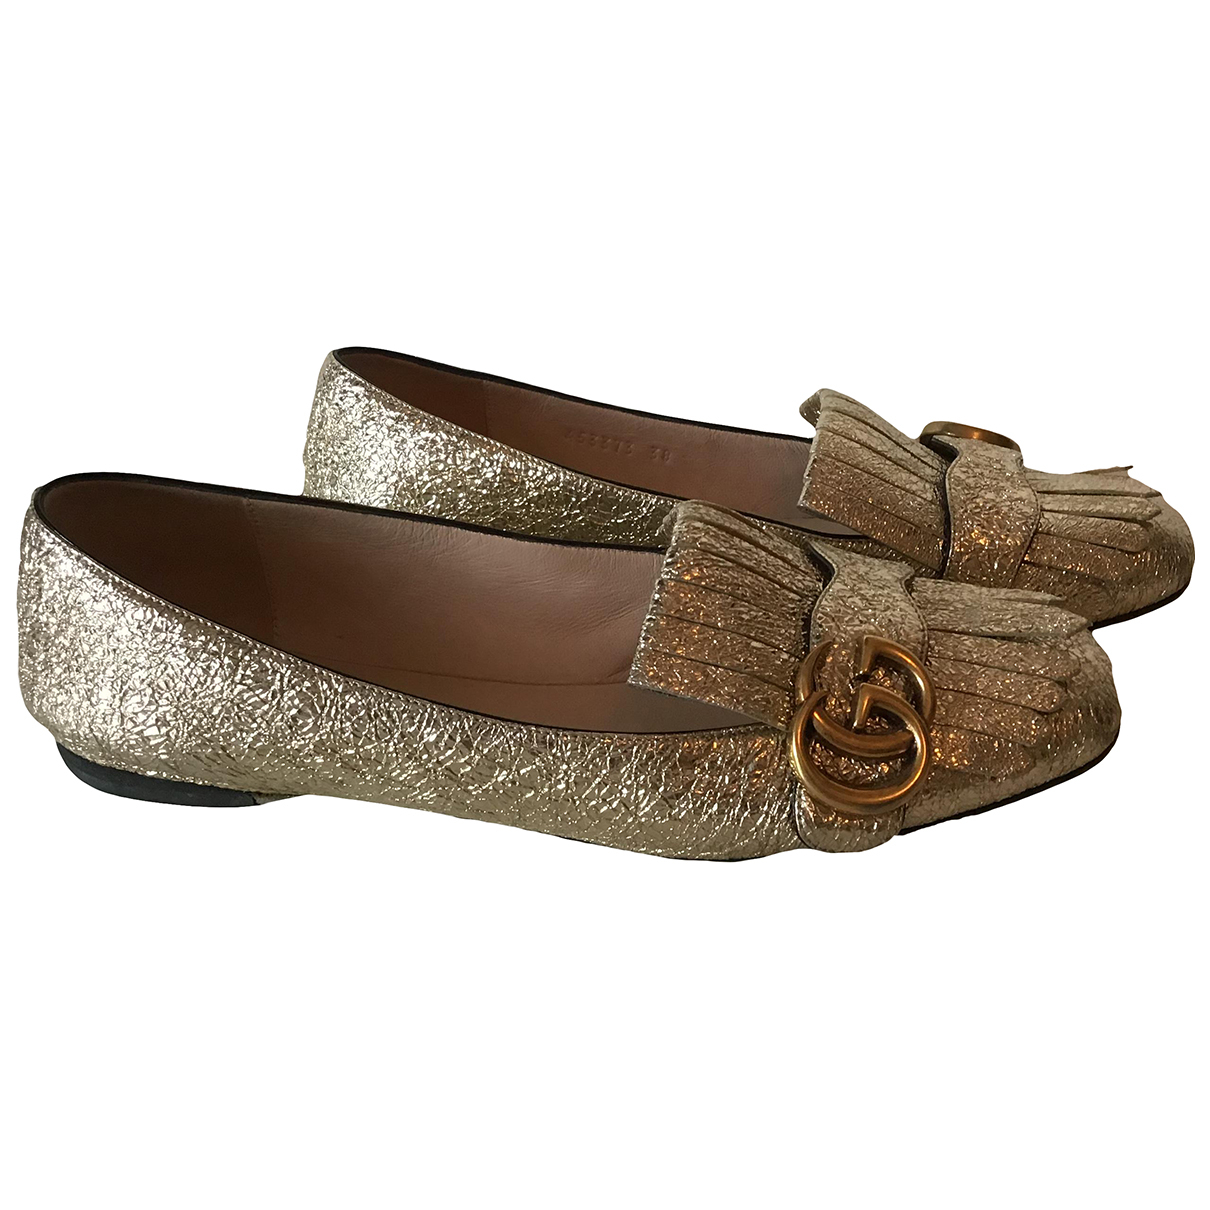 Gucci Marmont Leather Ballet flats for Women 38 EU